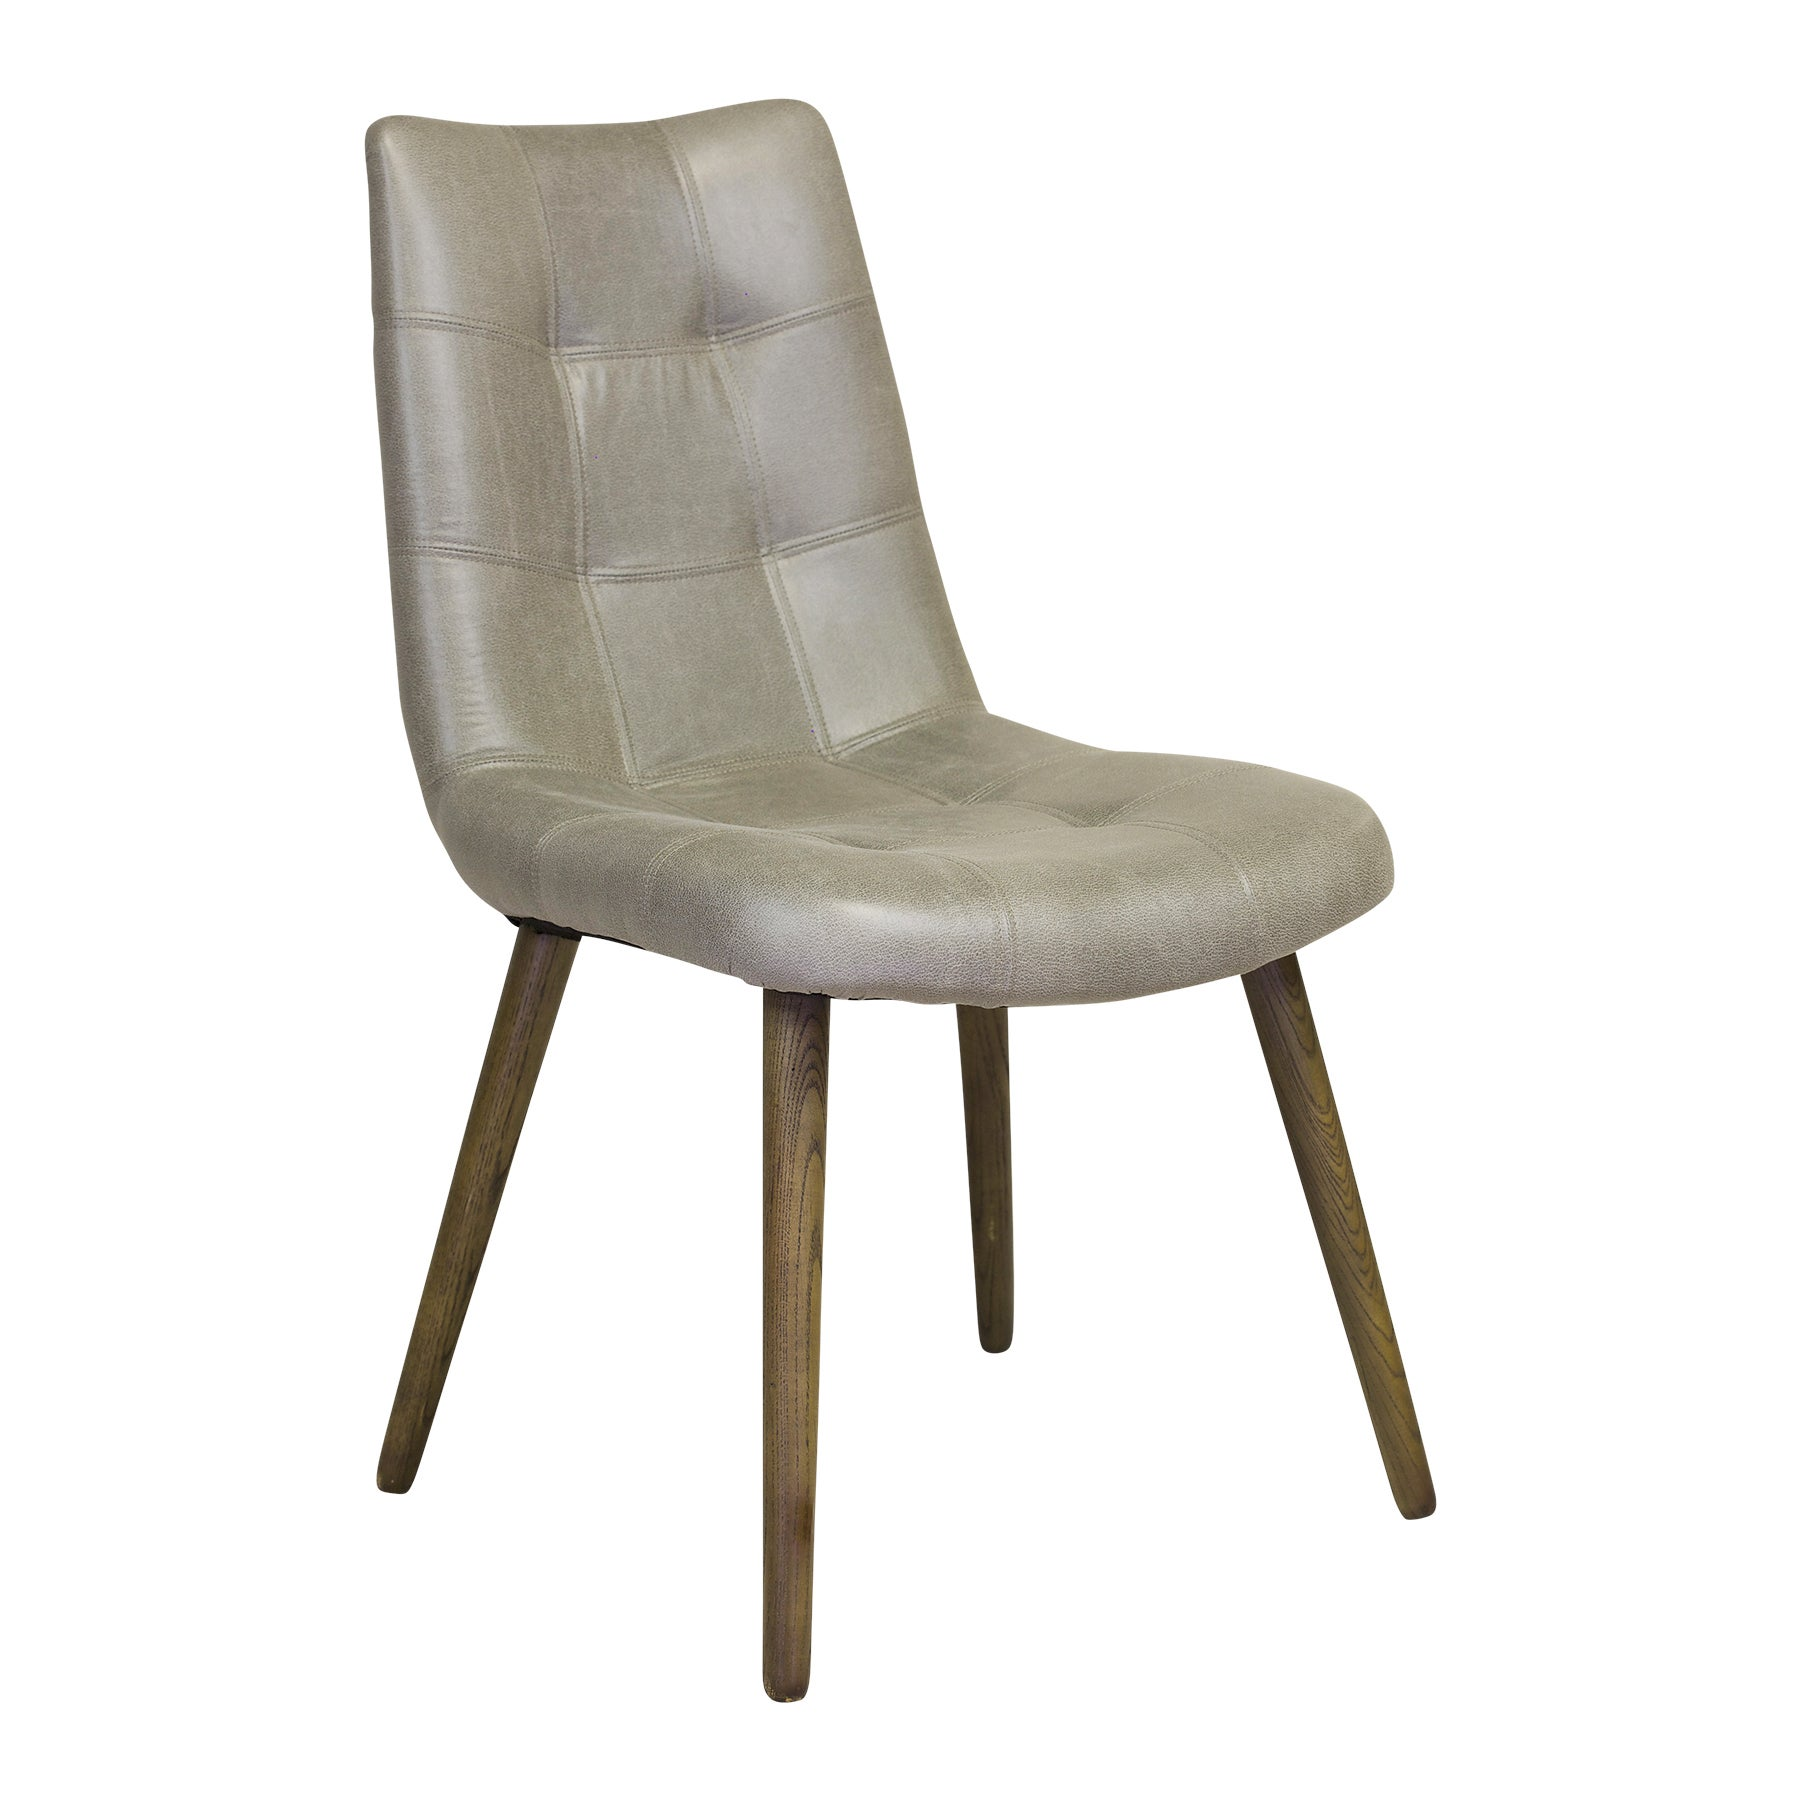 Handmade Havana Tufted Dining Chair In Grey Faux Leather United States